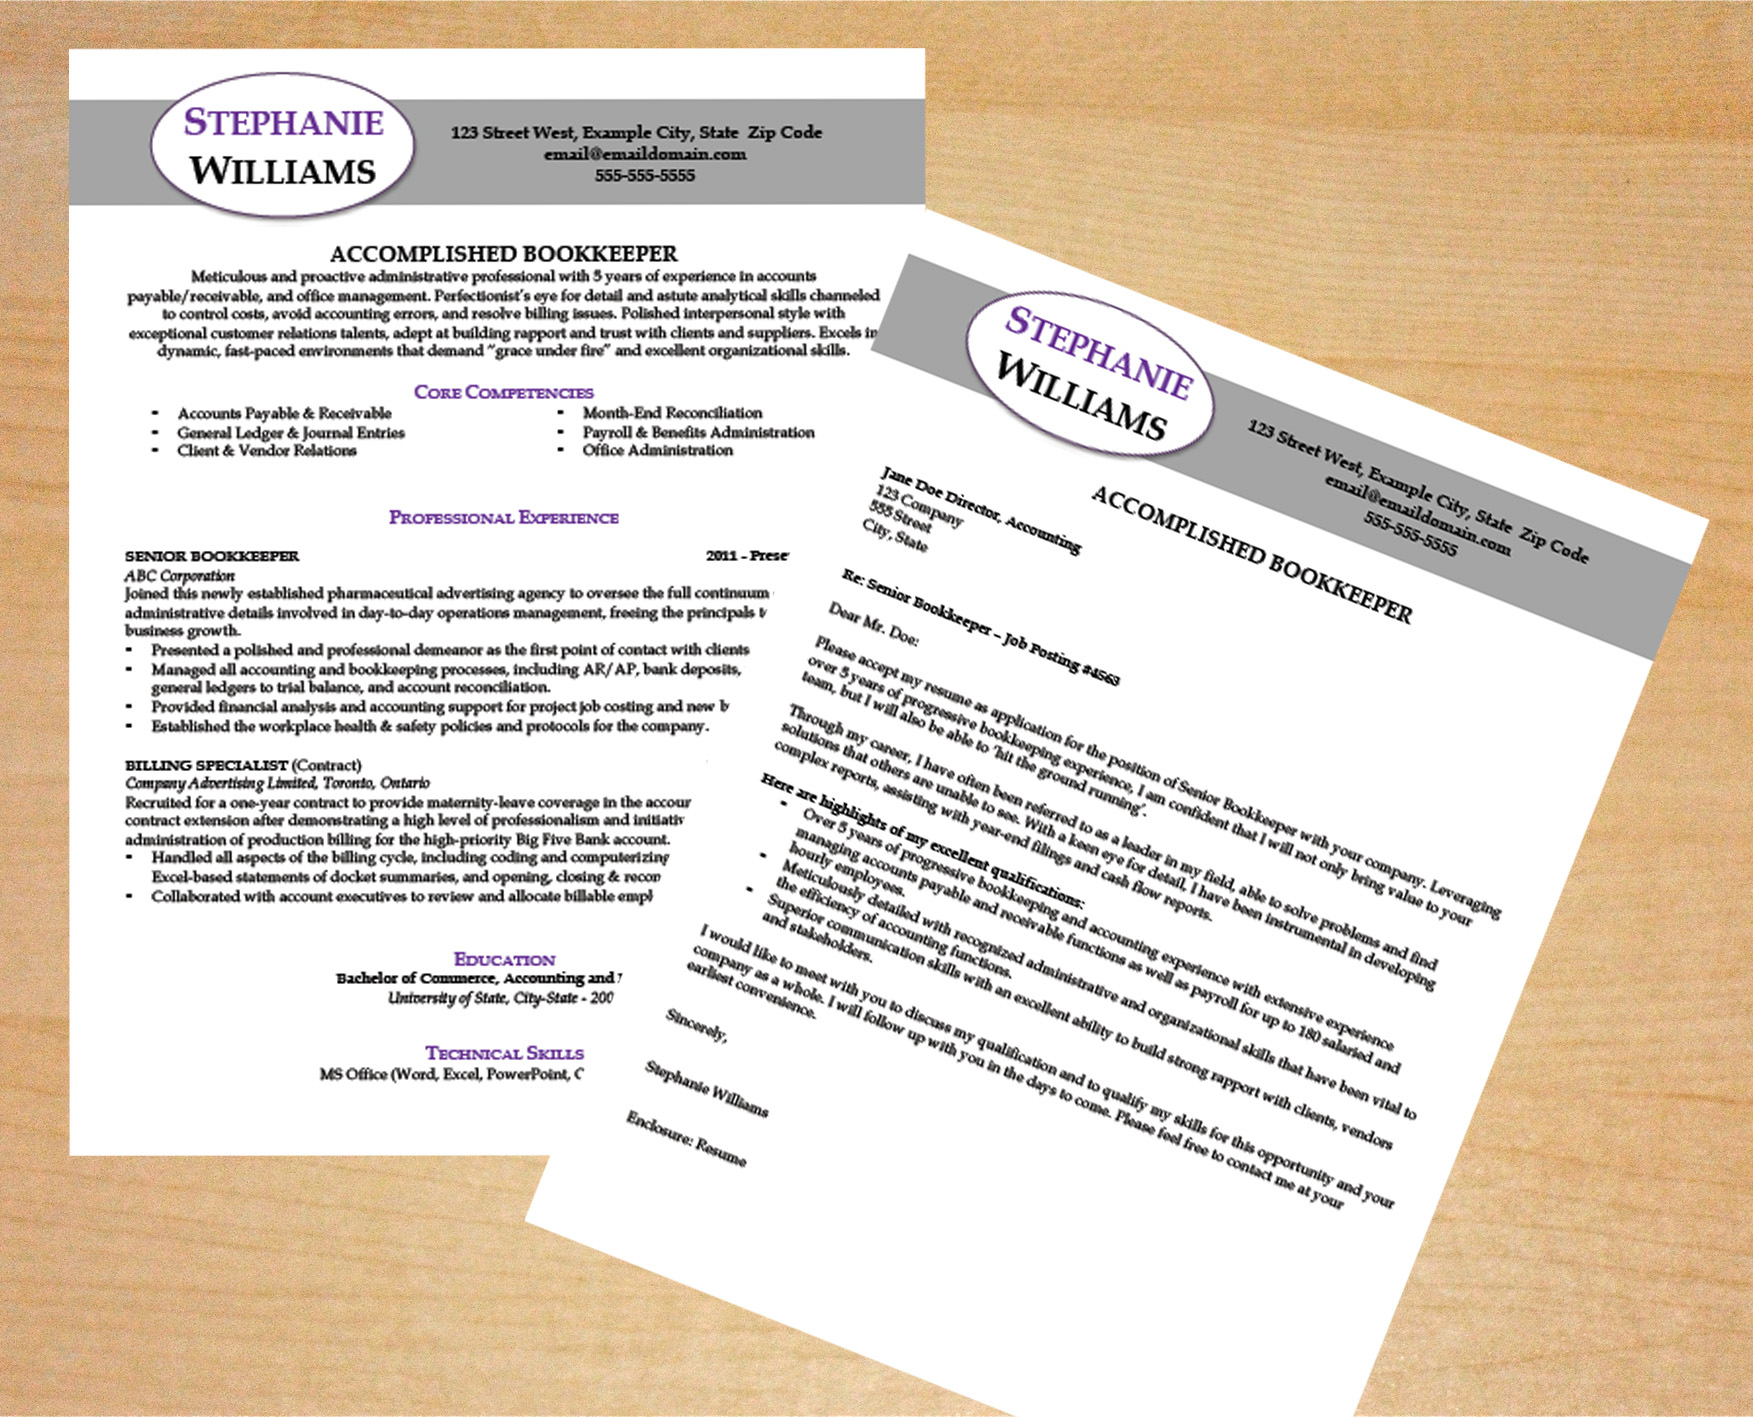 bookkeeper resume and cover letter template - Resume And Cover Letter